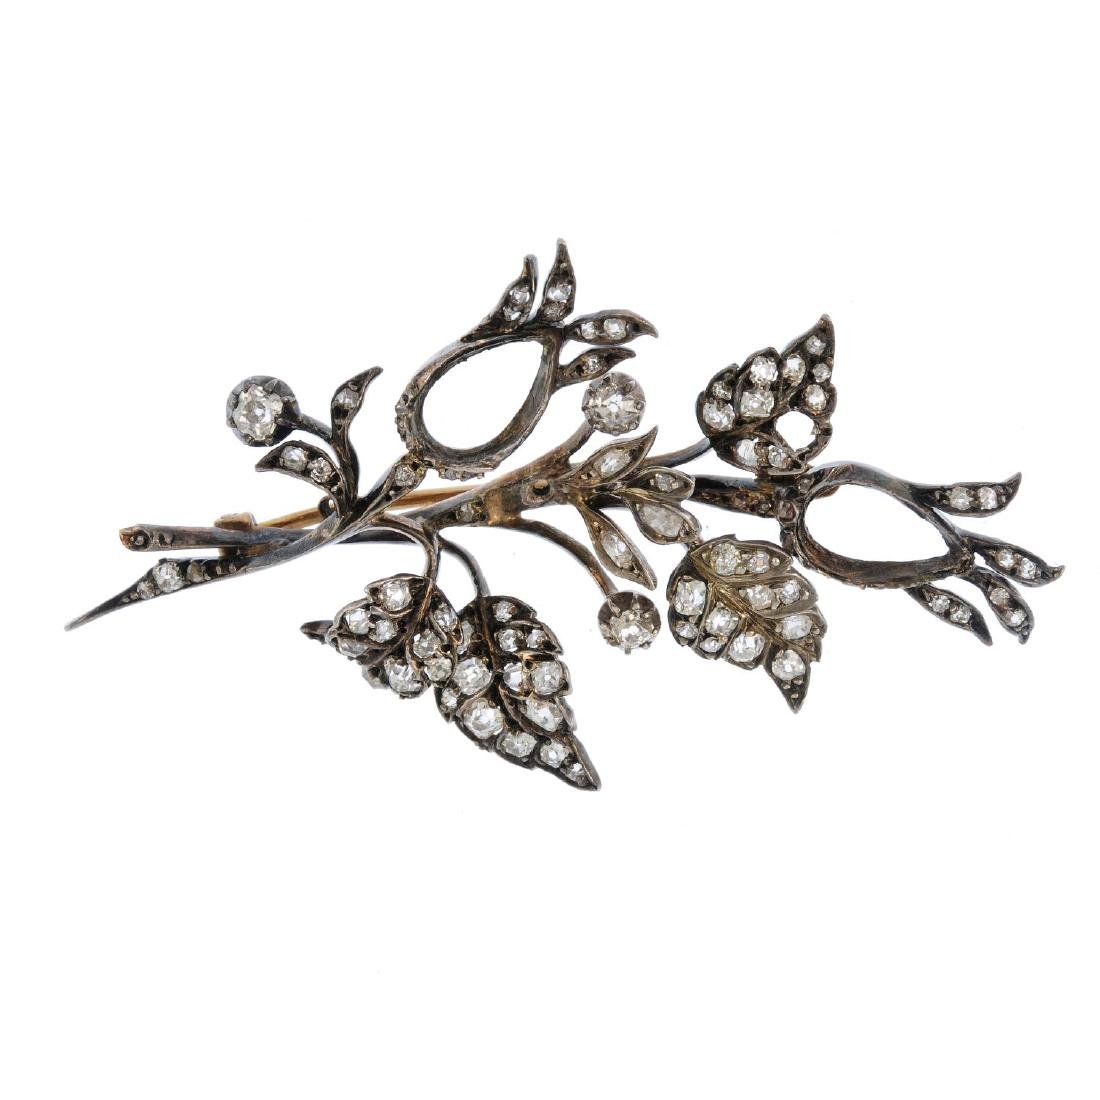 A mid Victorian silver and gold diamond set brooch